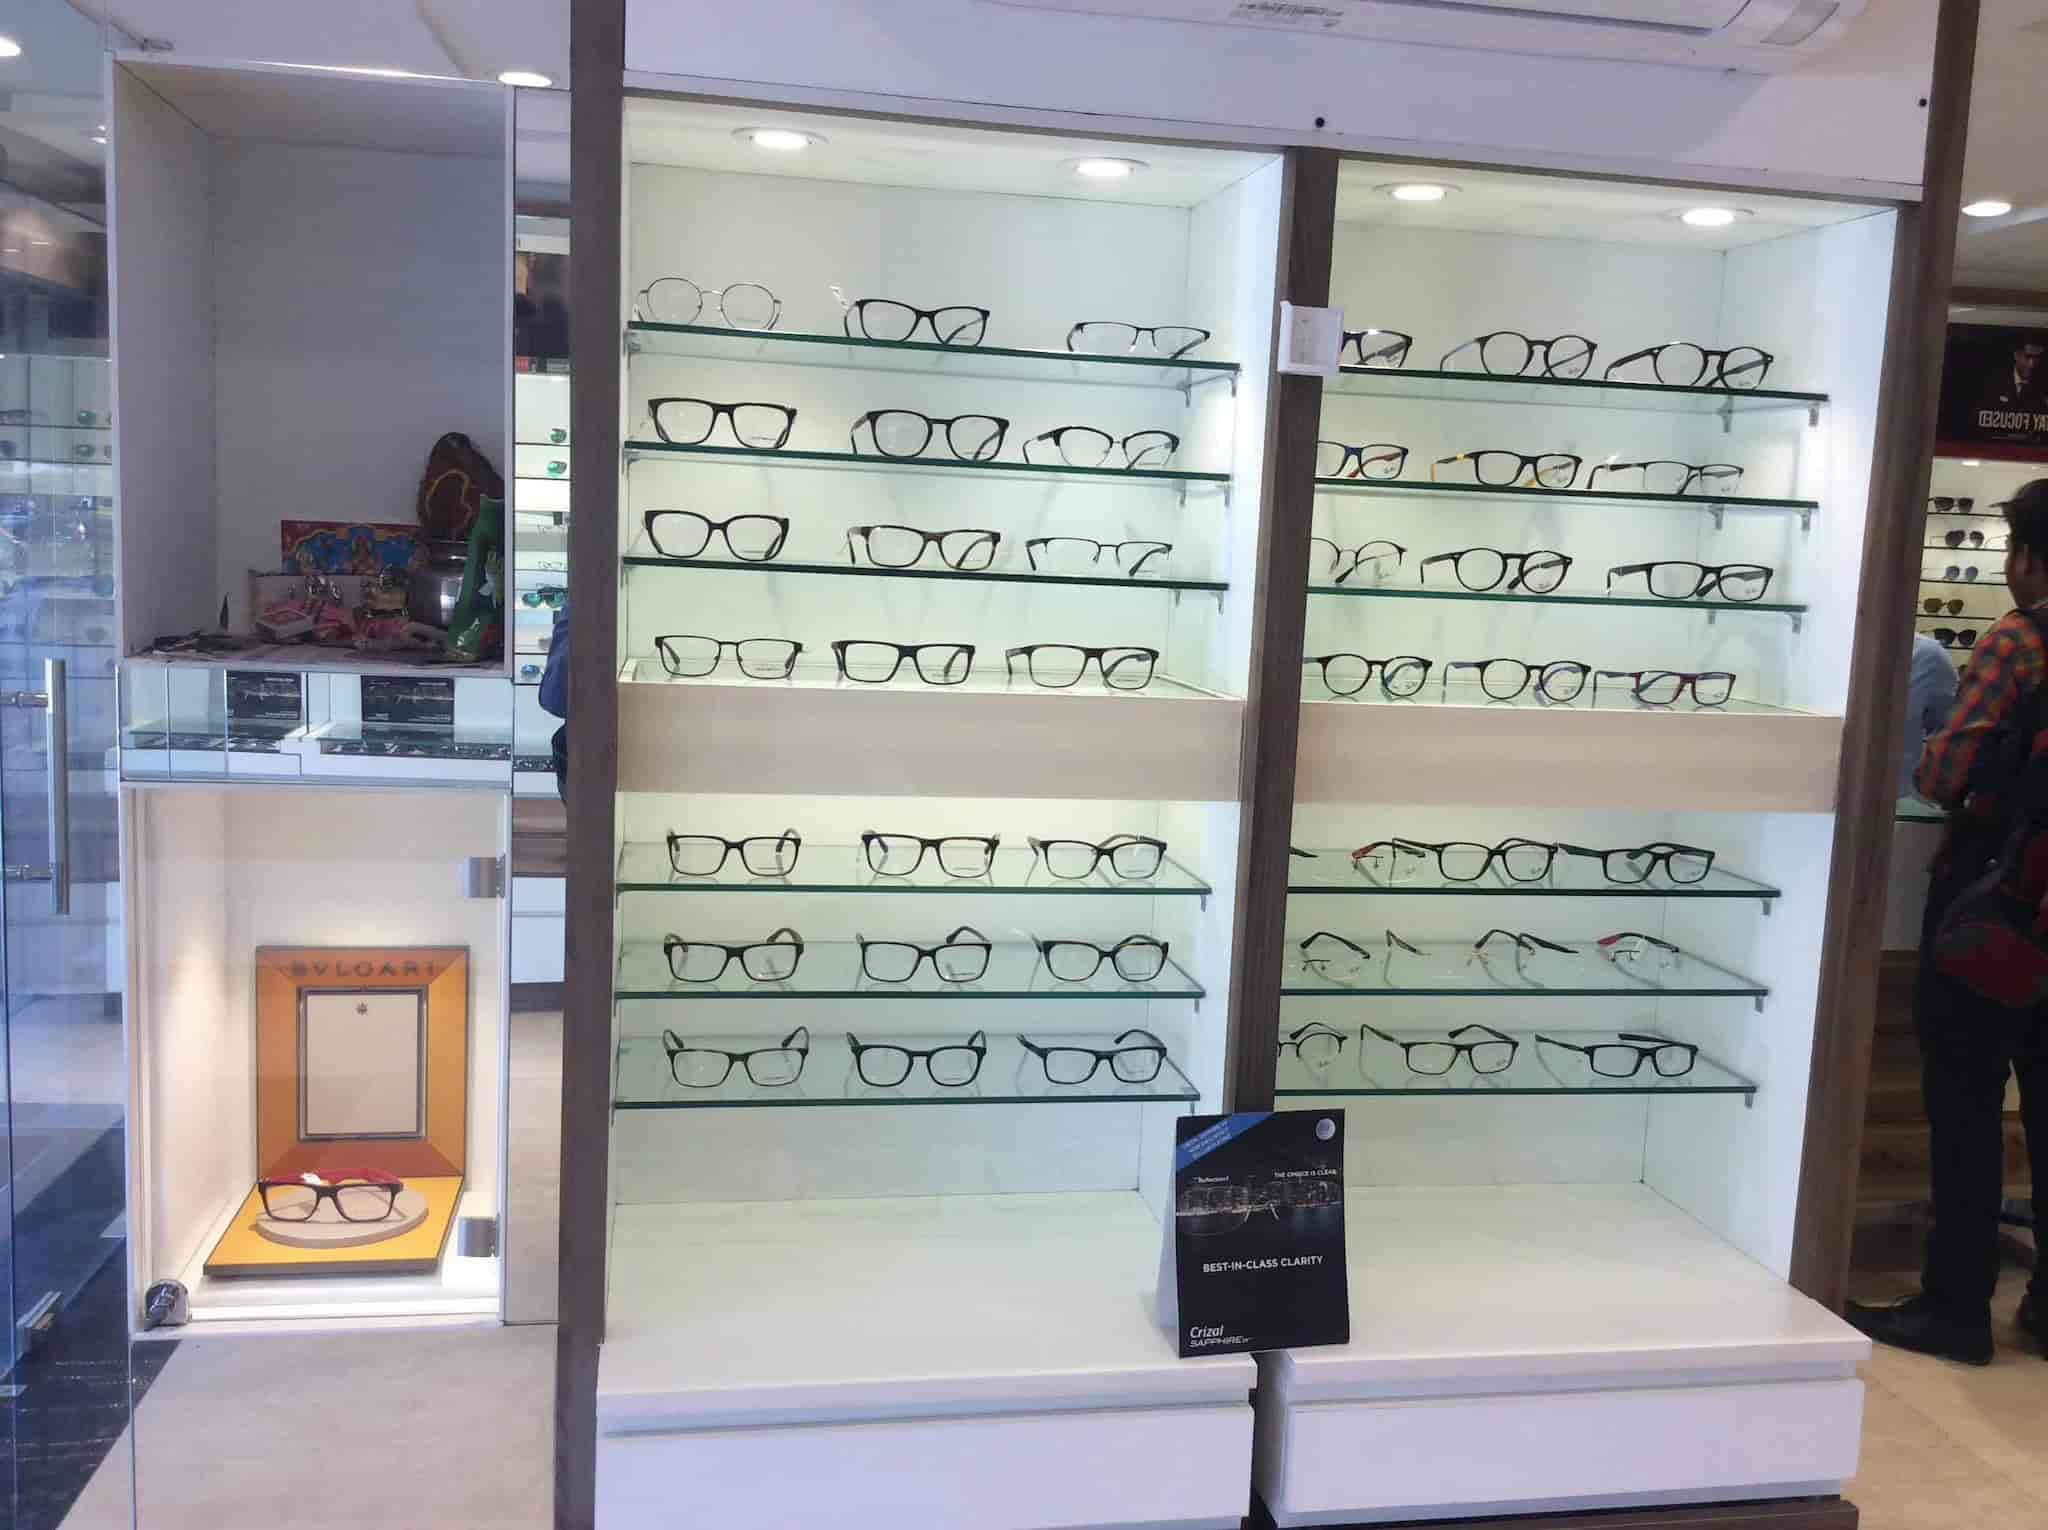 a976261e5d2 ... Himalaya Optical Centre Pvt Ltd Photos